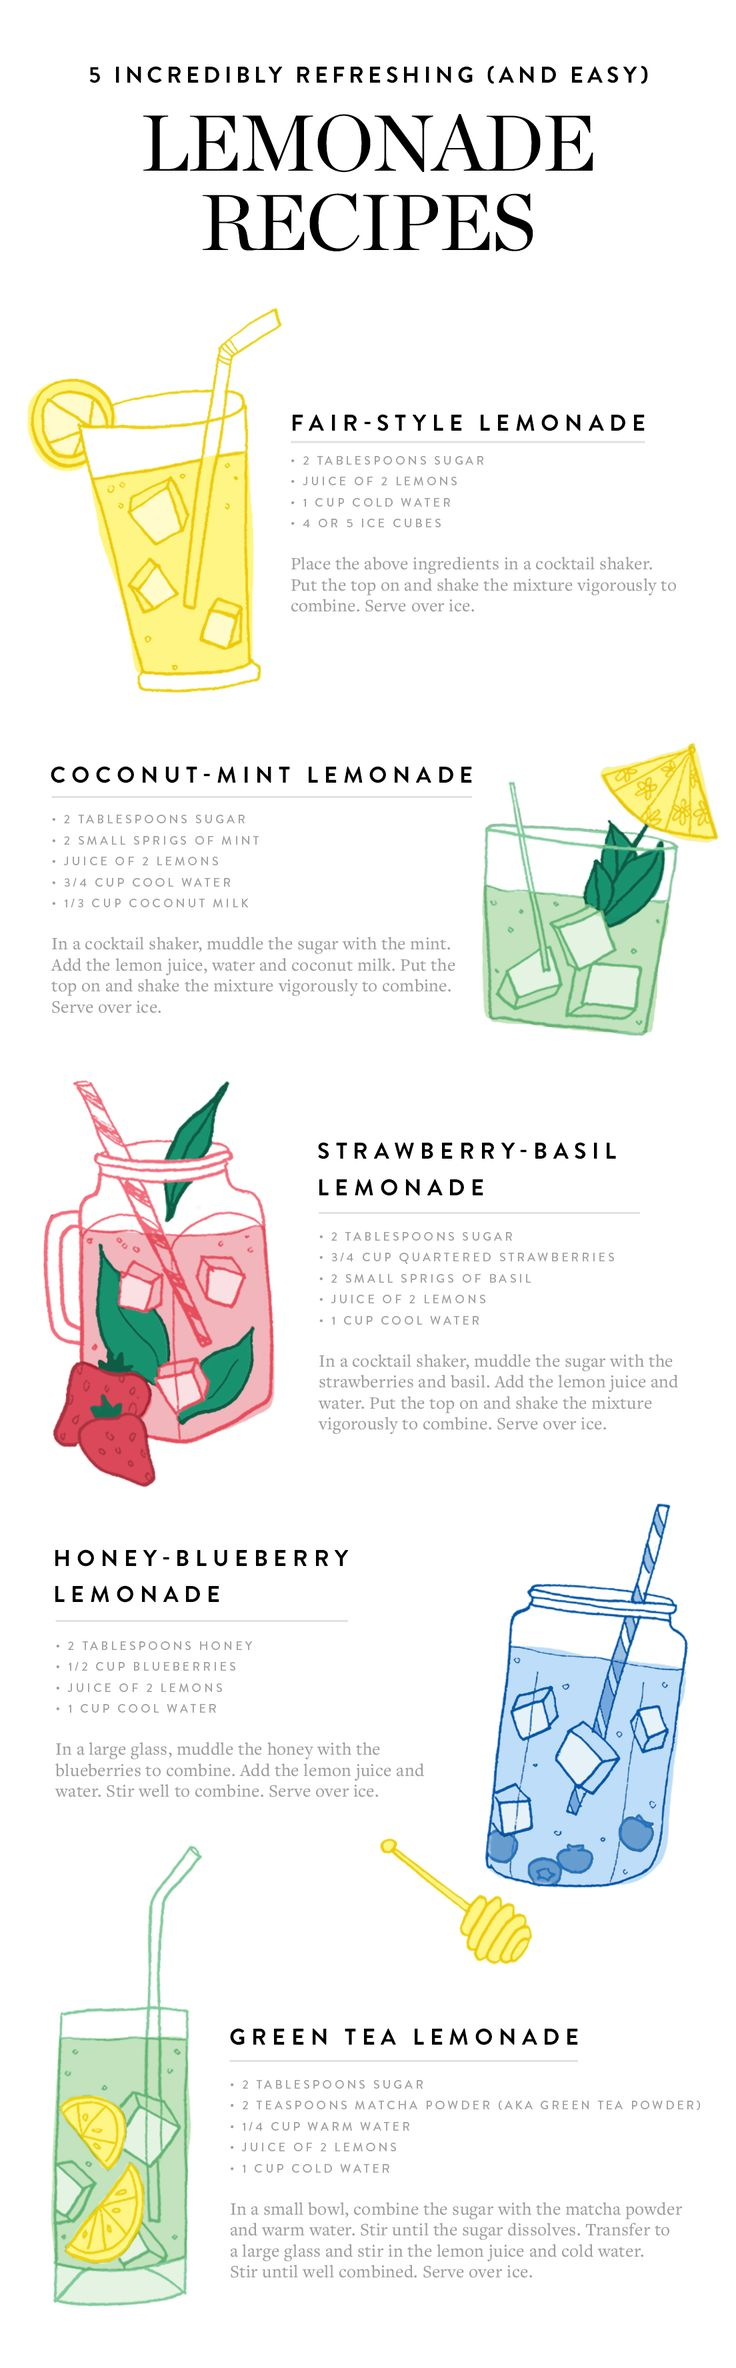 5 lemonade recipes you have to try.